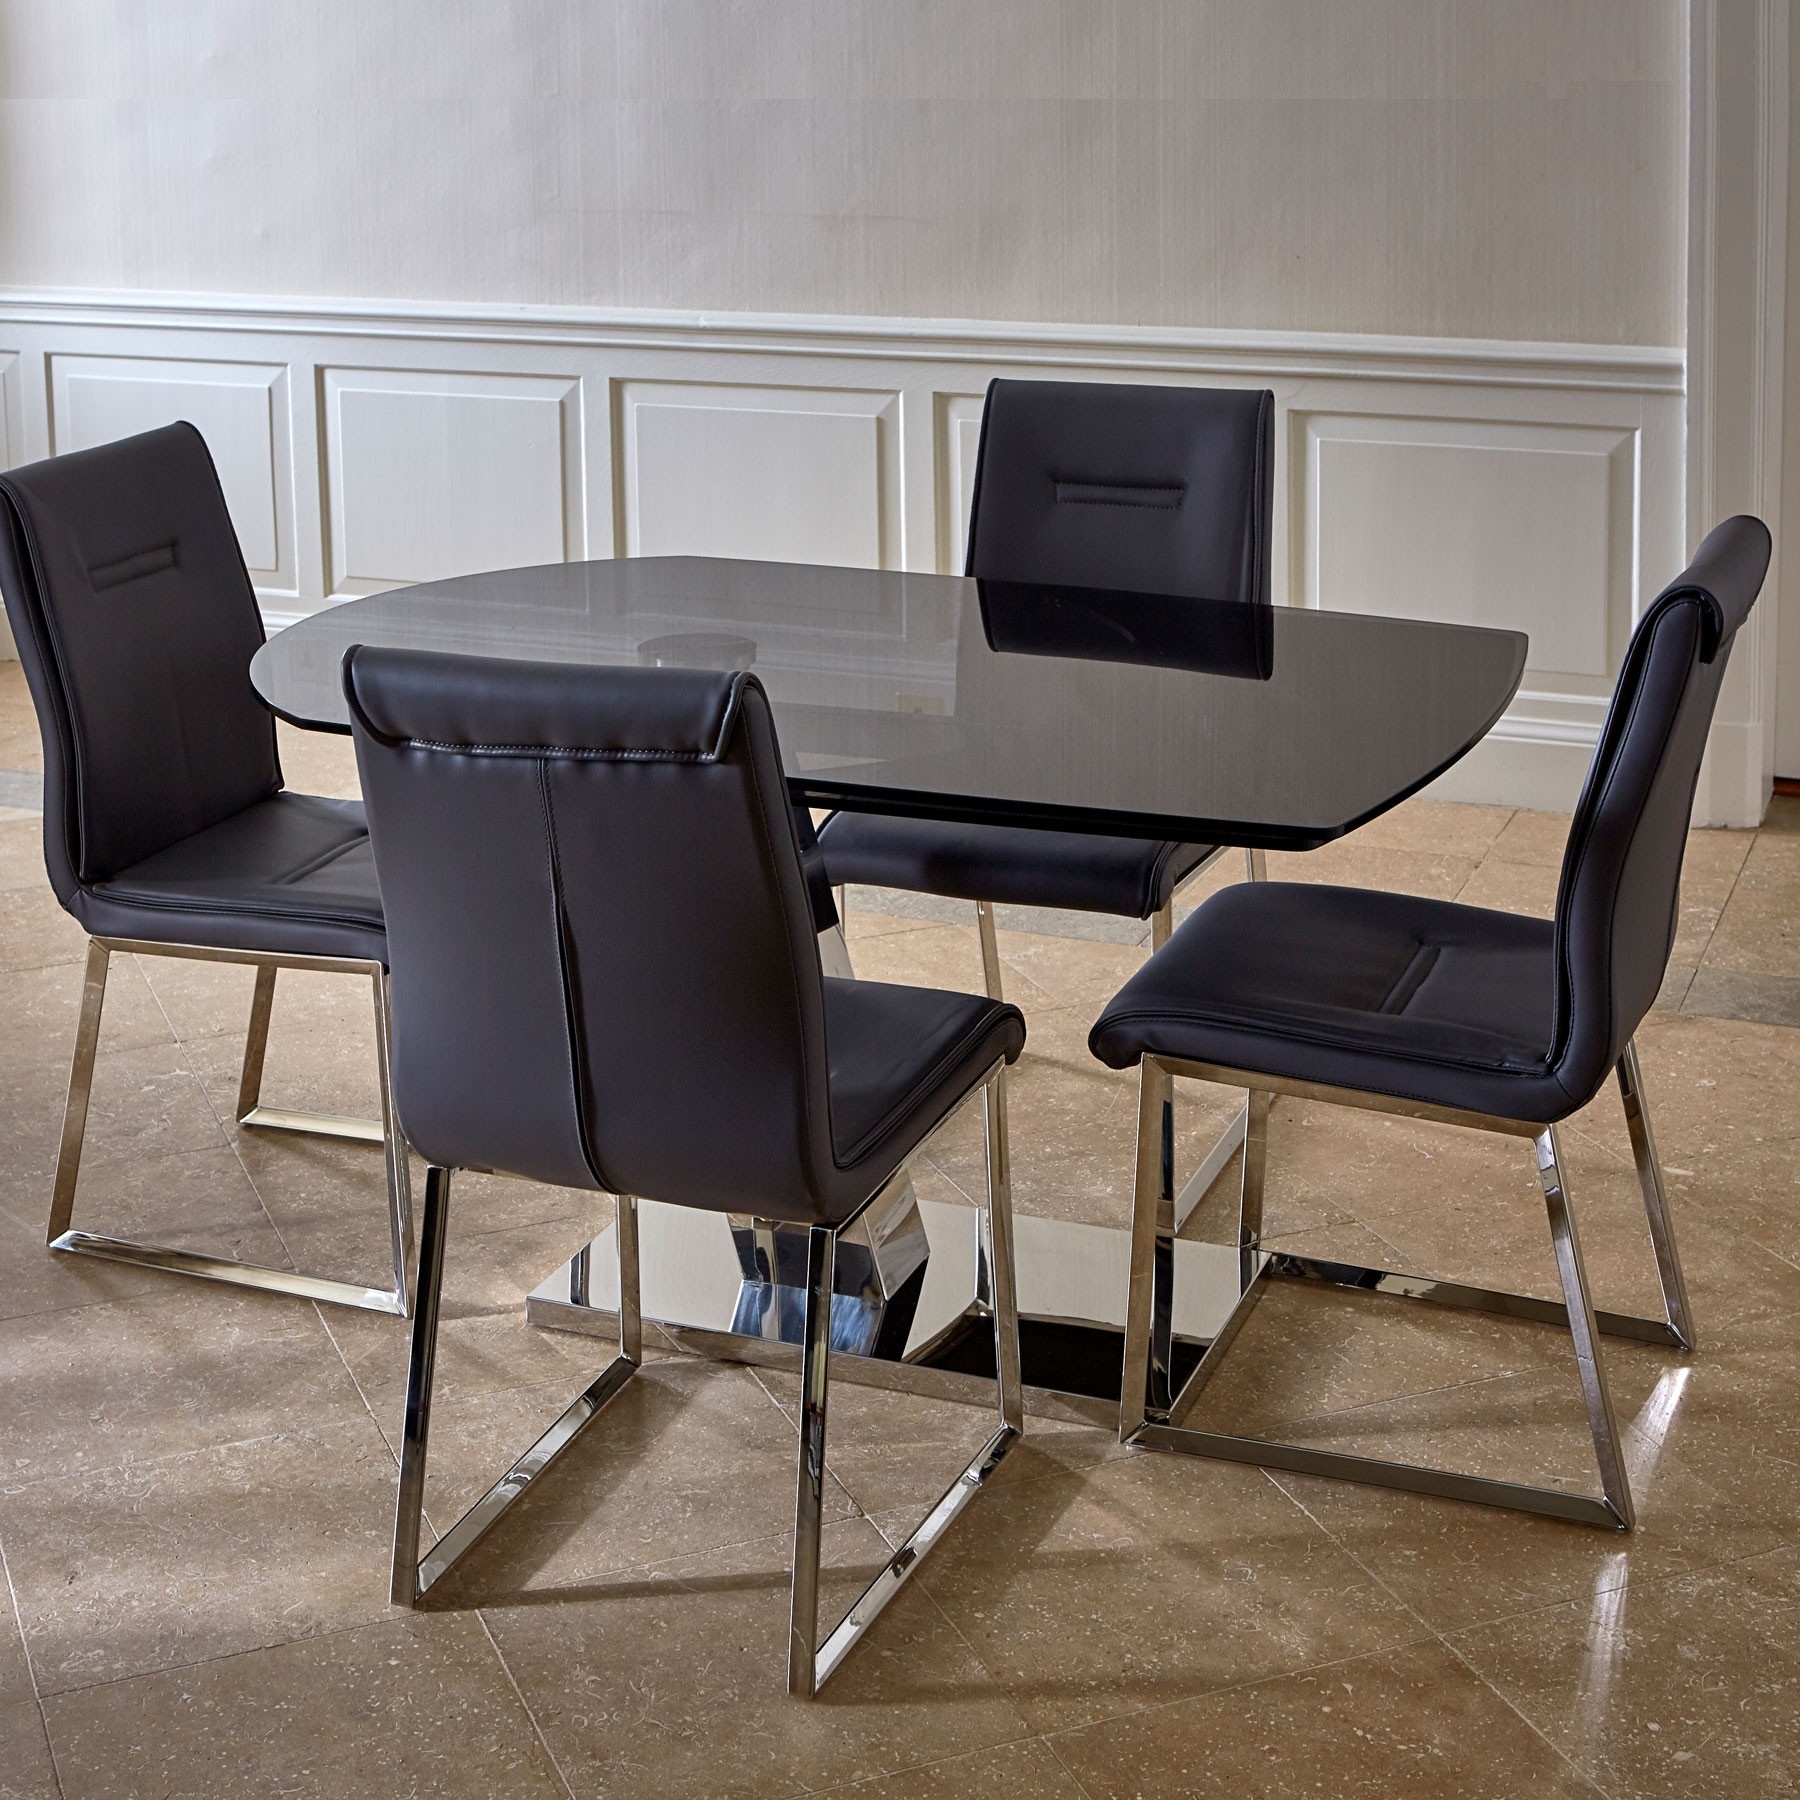 Cheap Glass Dining Tables And 4 Chairs Inside Widely Used Zena Extending Smoked Glass Dining Table & 4 Chairs (Gallery 4 of 25)